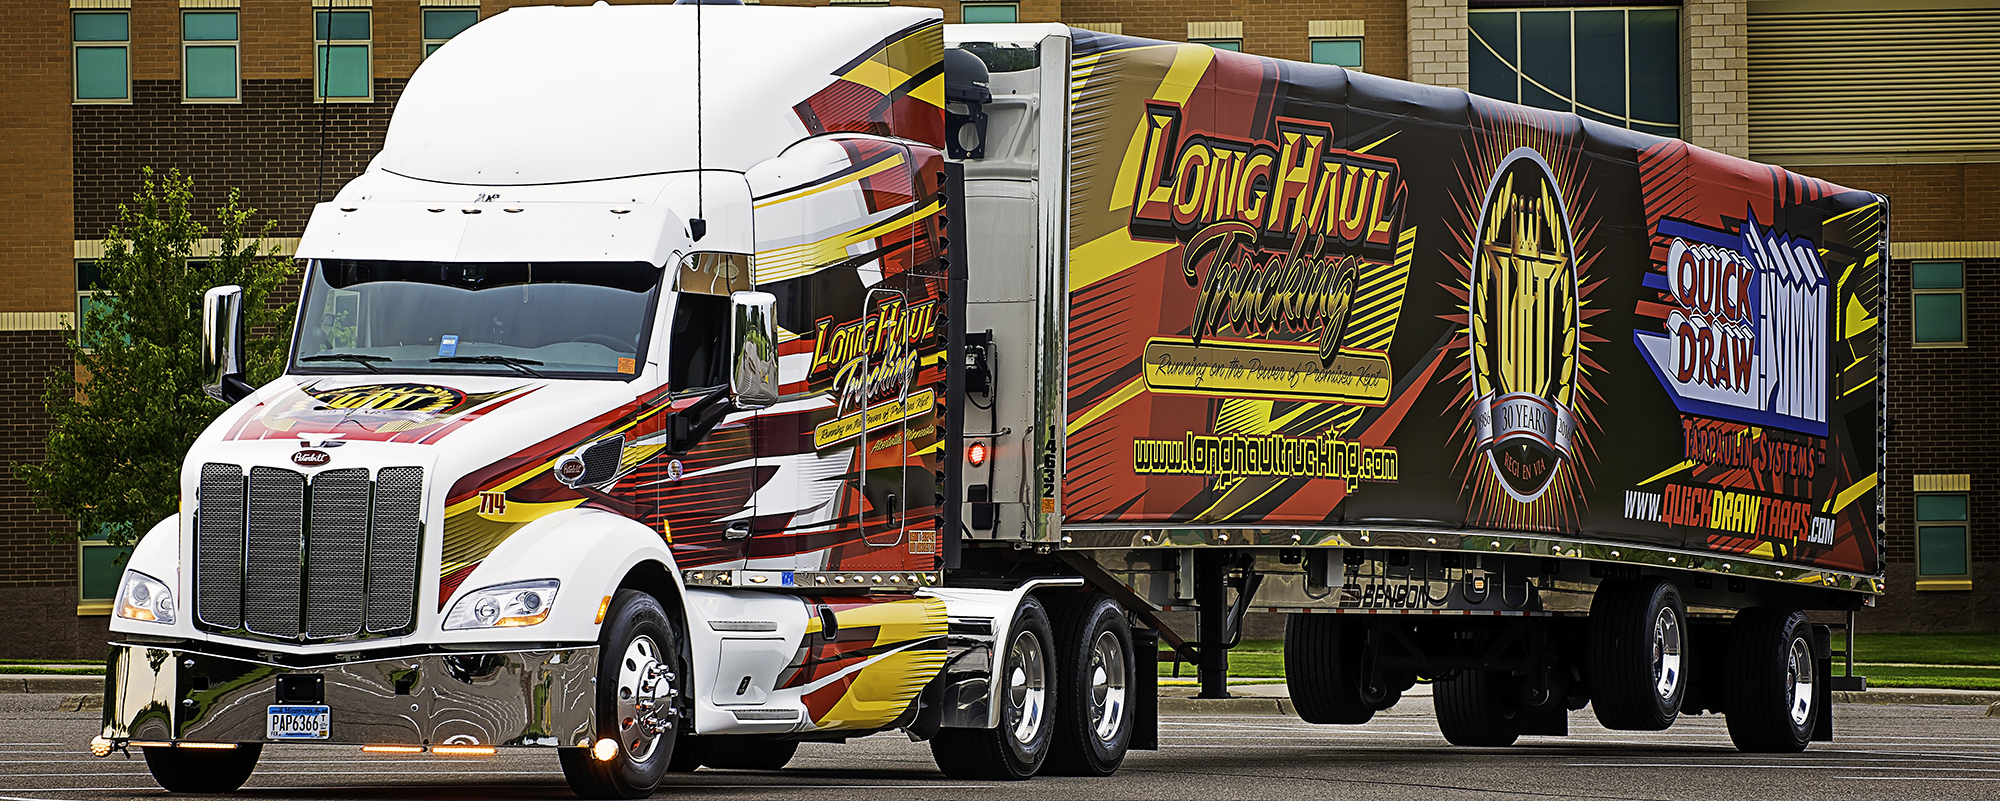 Long Haul Trucking >> Attention all drivers, Mechanics and shop Techs! - LHT ...